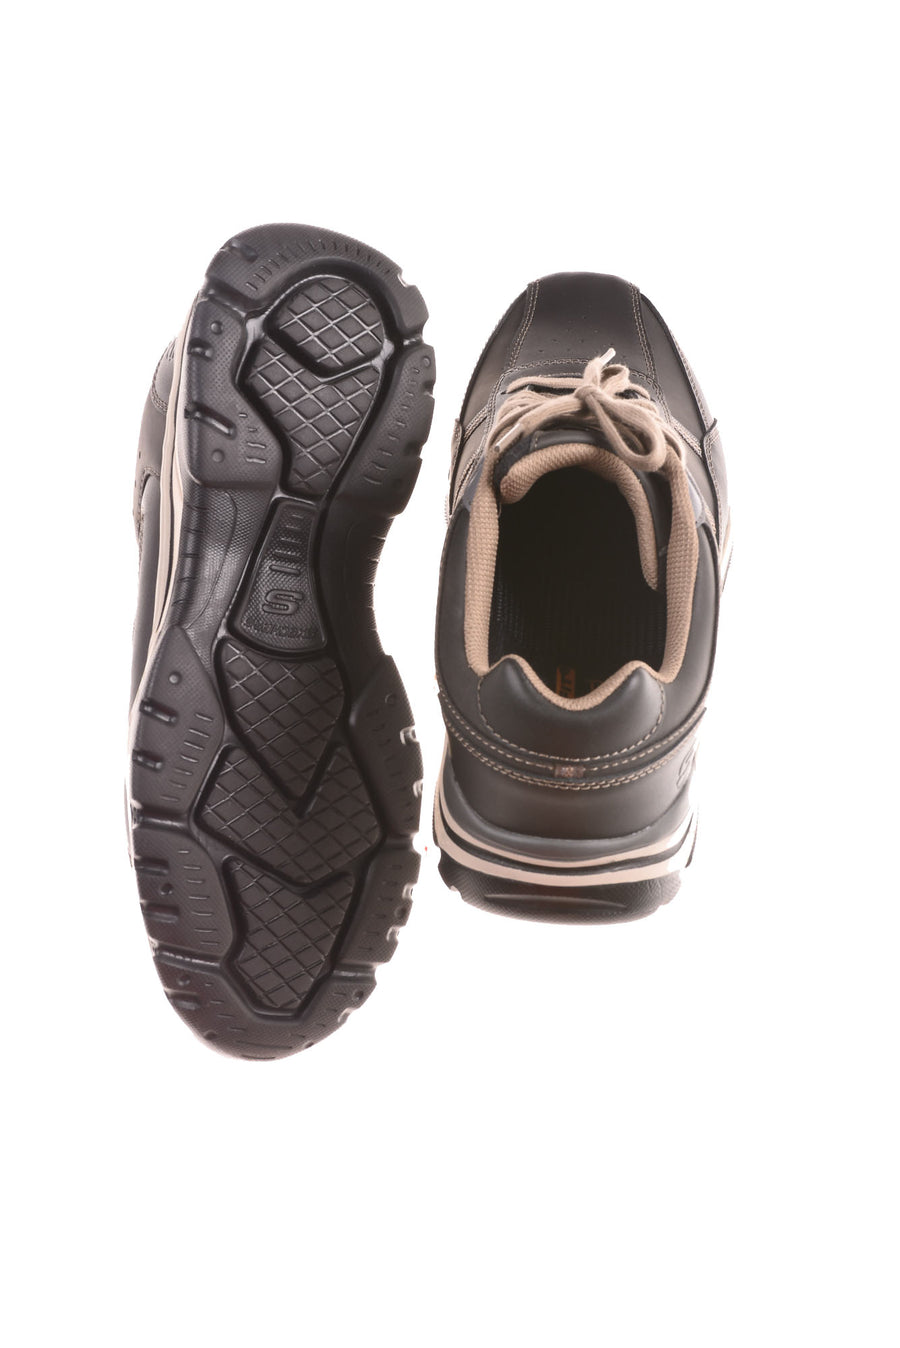 USED Skechers Men's Shoes 11.5 Black & Tan